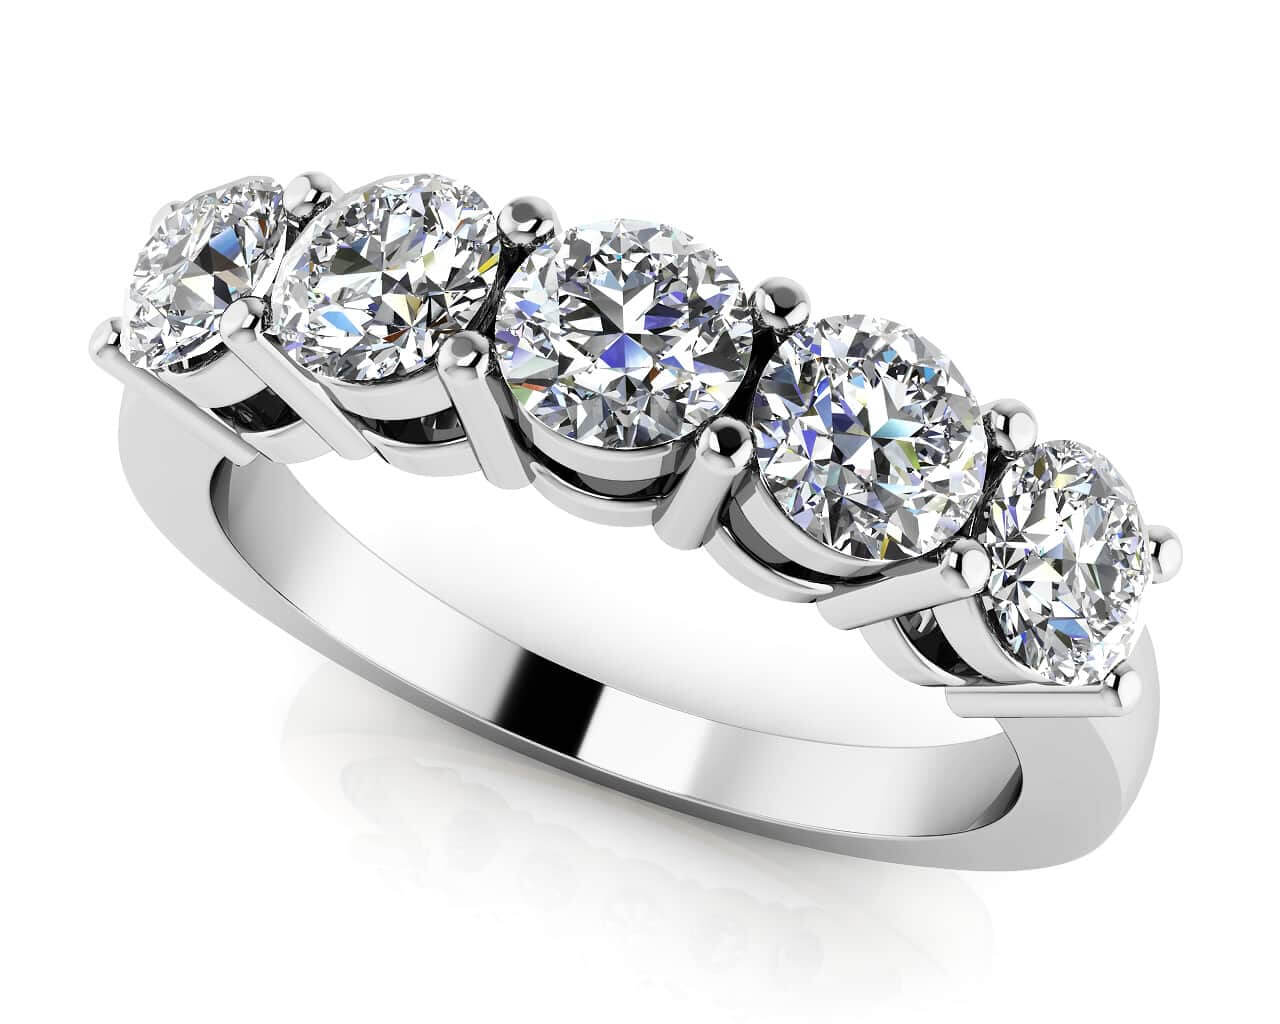 jewelry collection - Design Your Own Wedding Ring